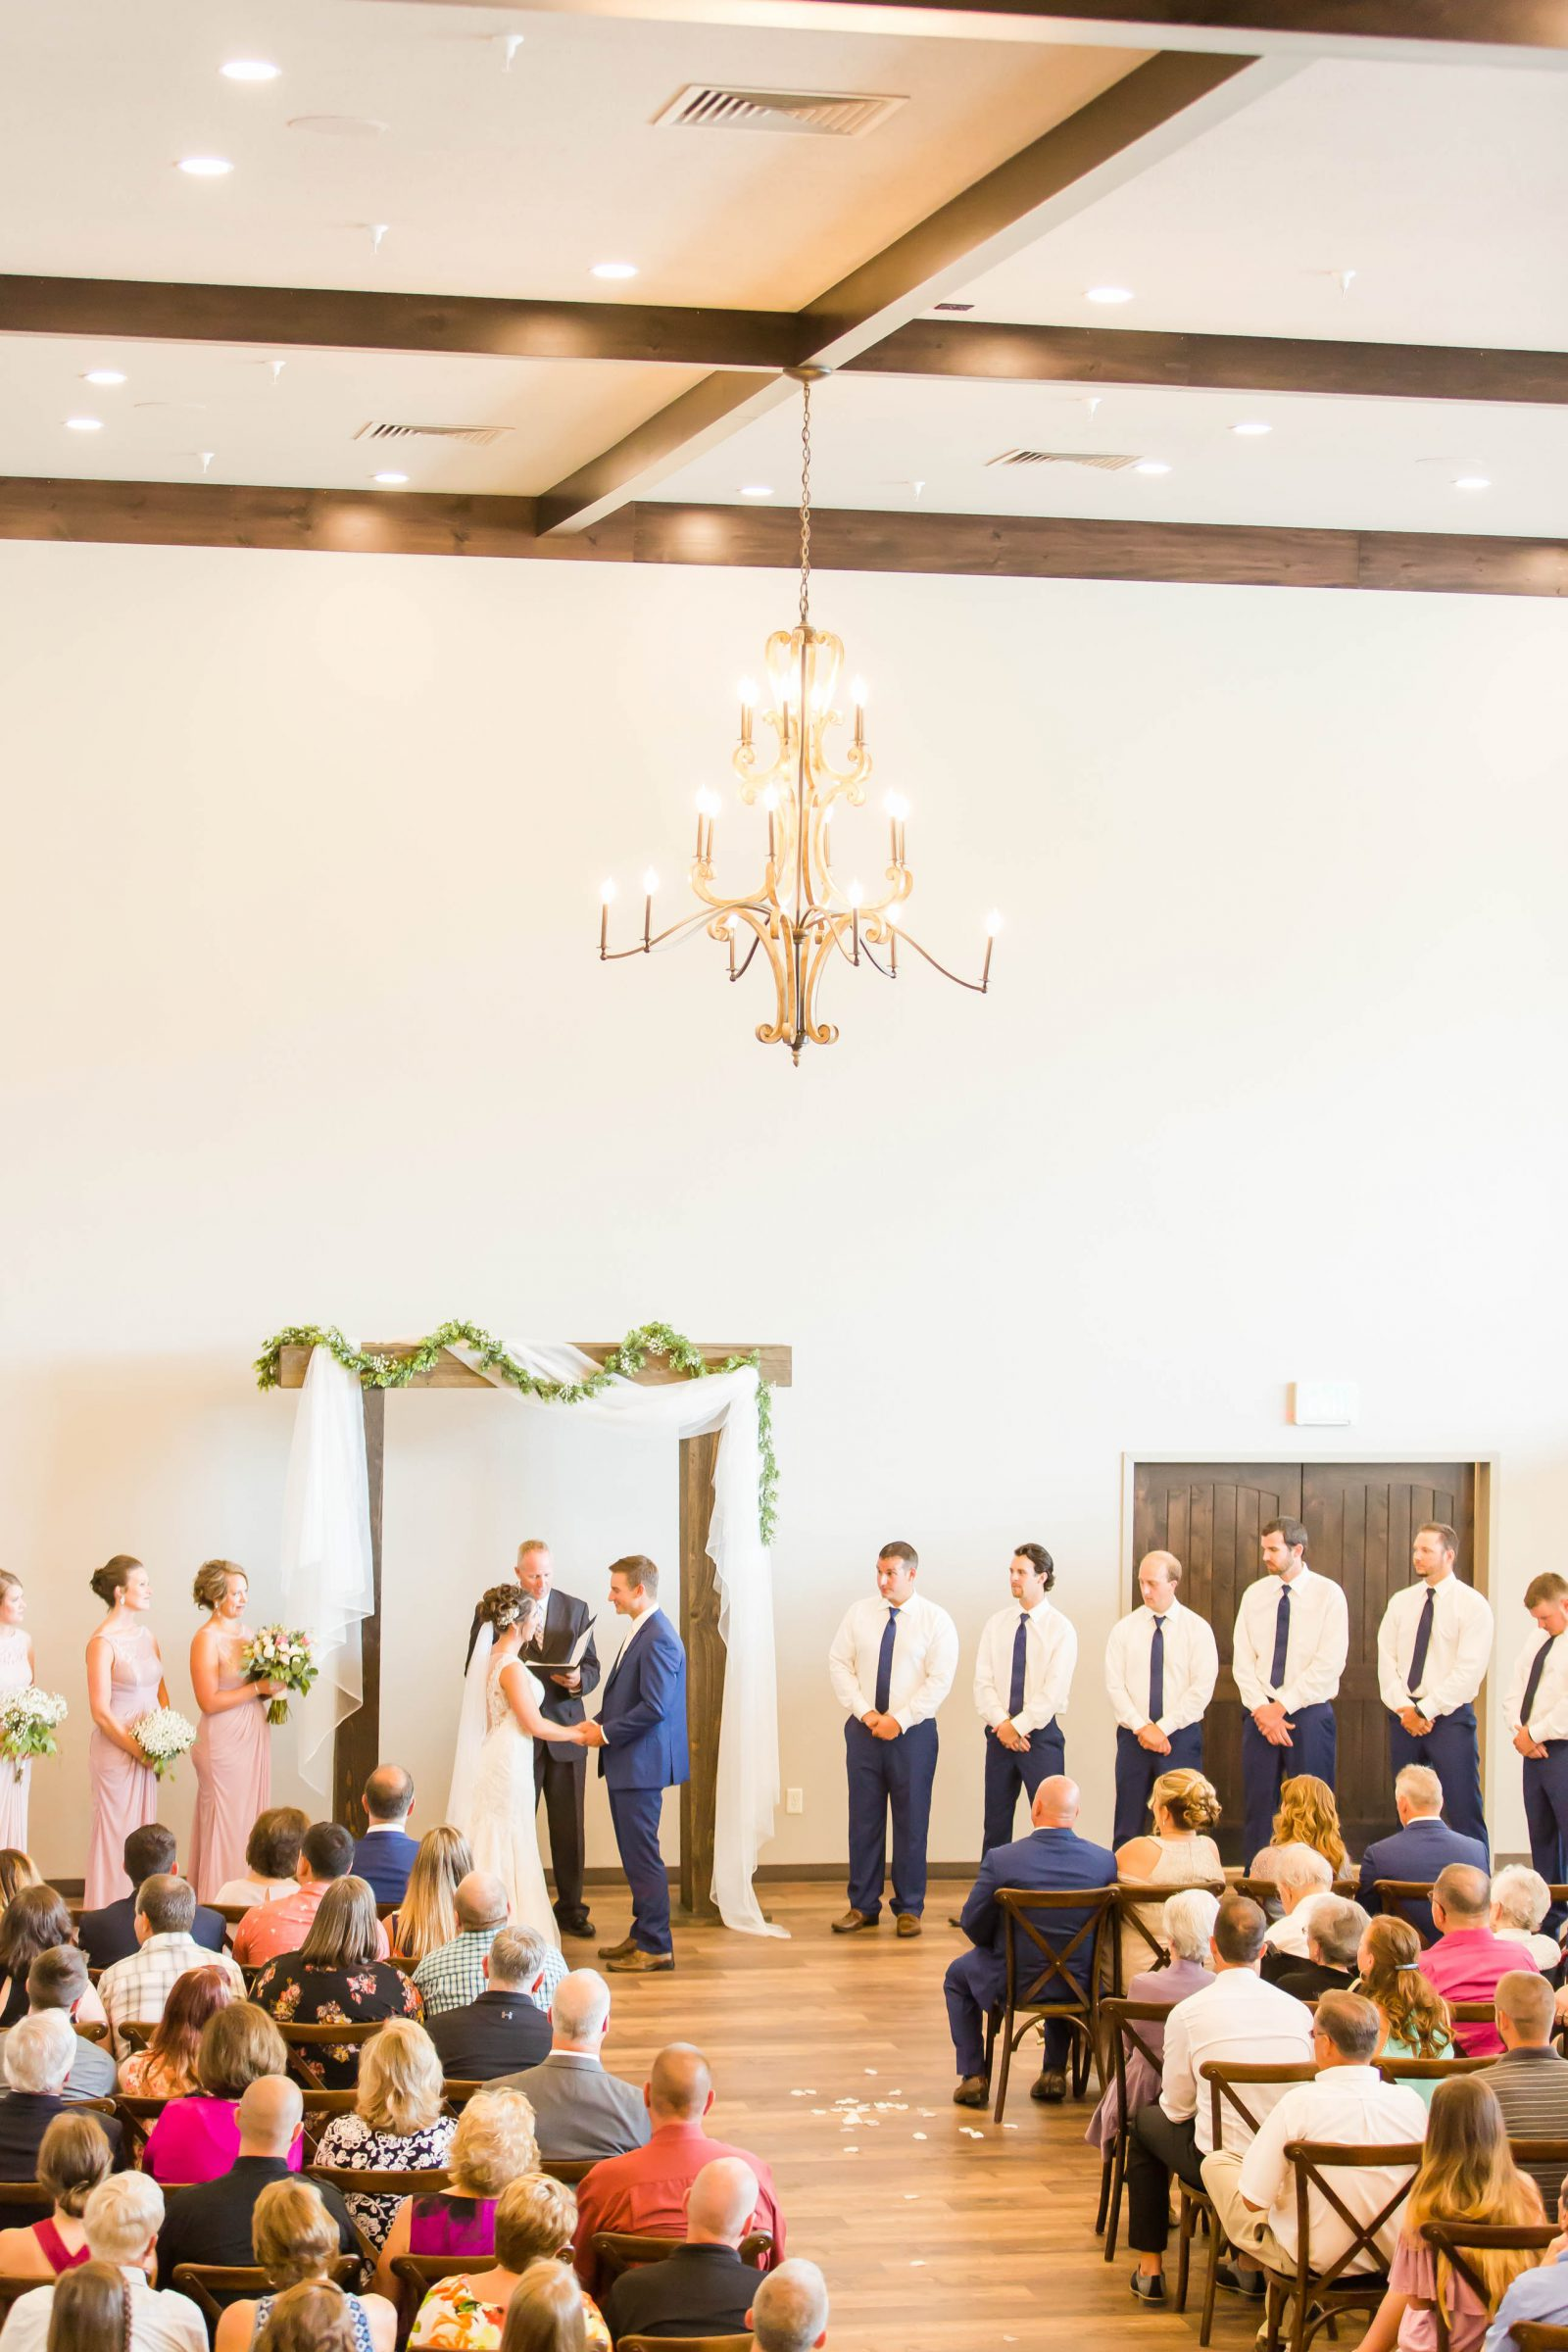 encore-hall-wedding-berlin-ohio-loren-jackson-photography-92